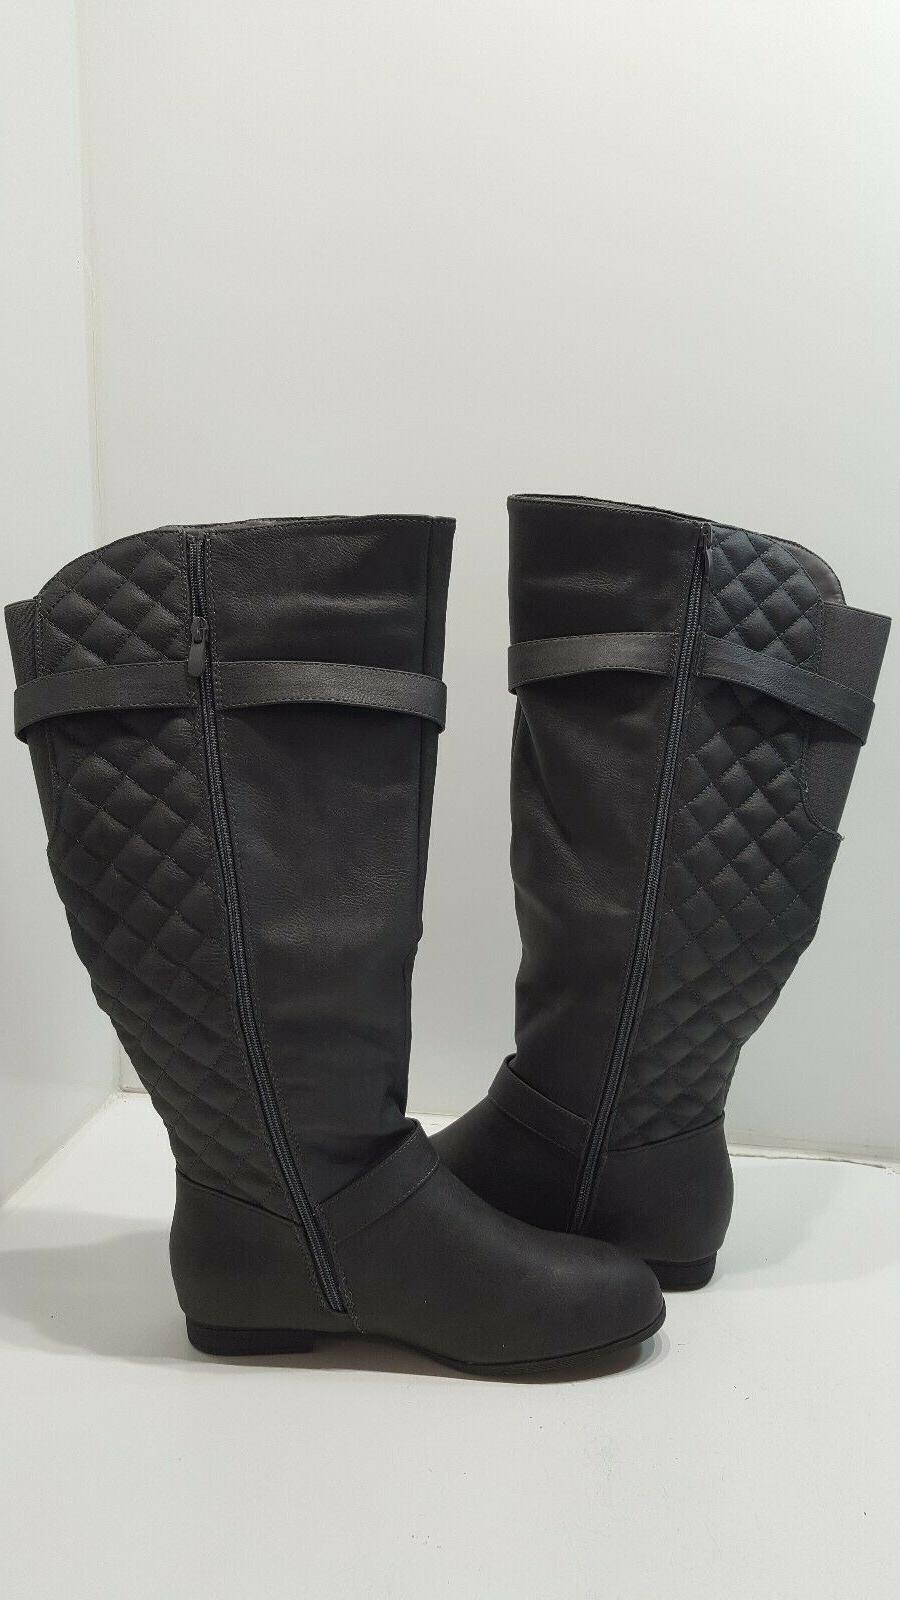 Global Win Knee High Boots Side Zip Size 10